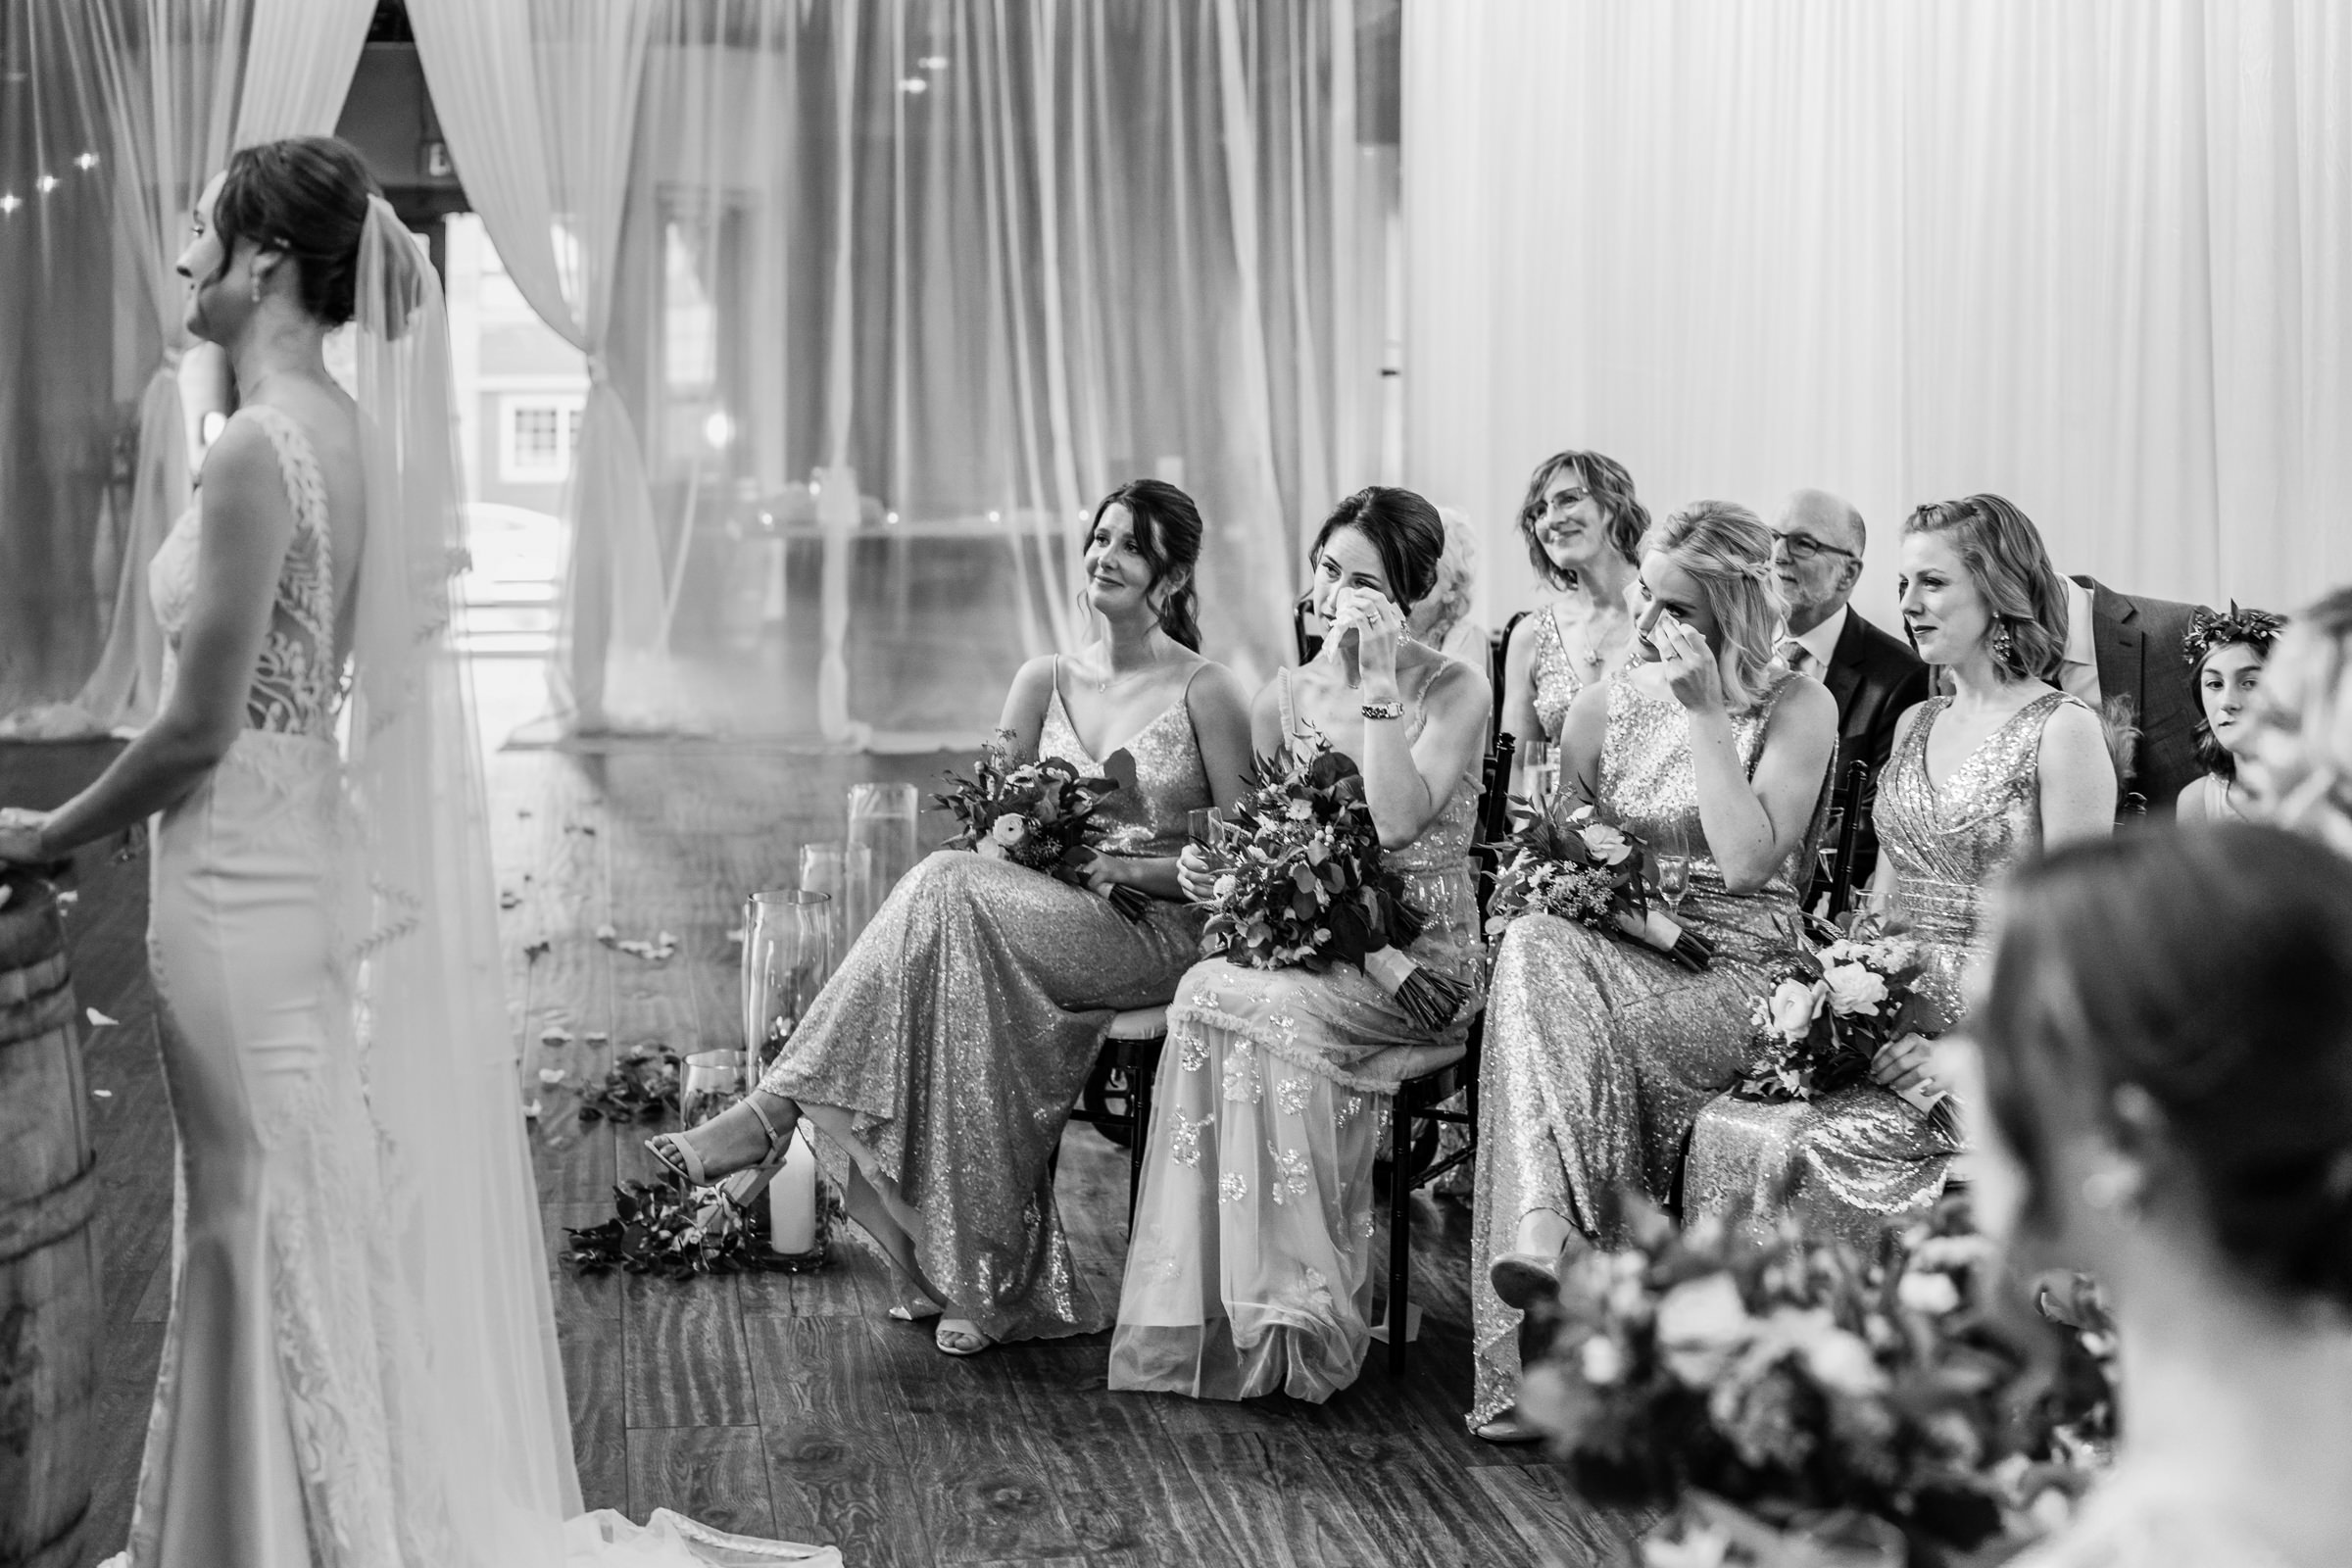 Bridesmaids tear up during ceremony - photo by Sasha Reiko Photography